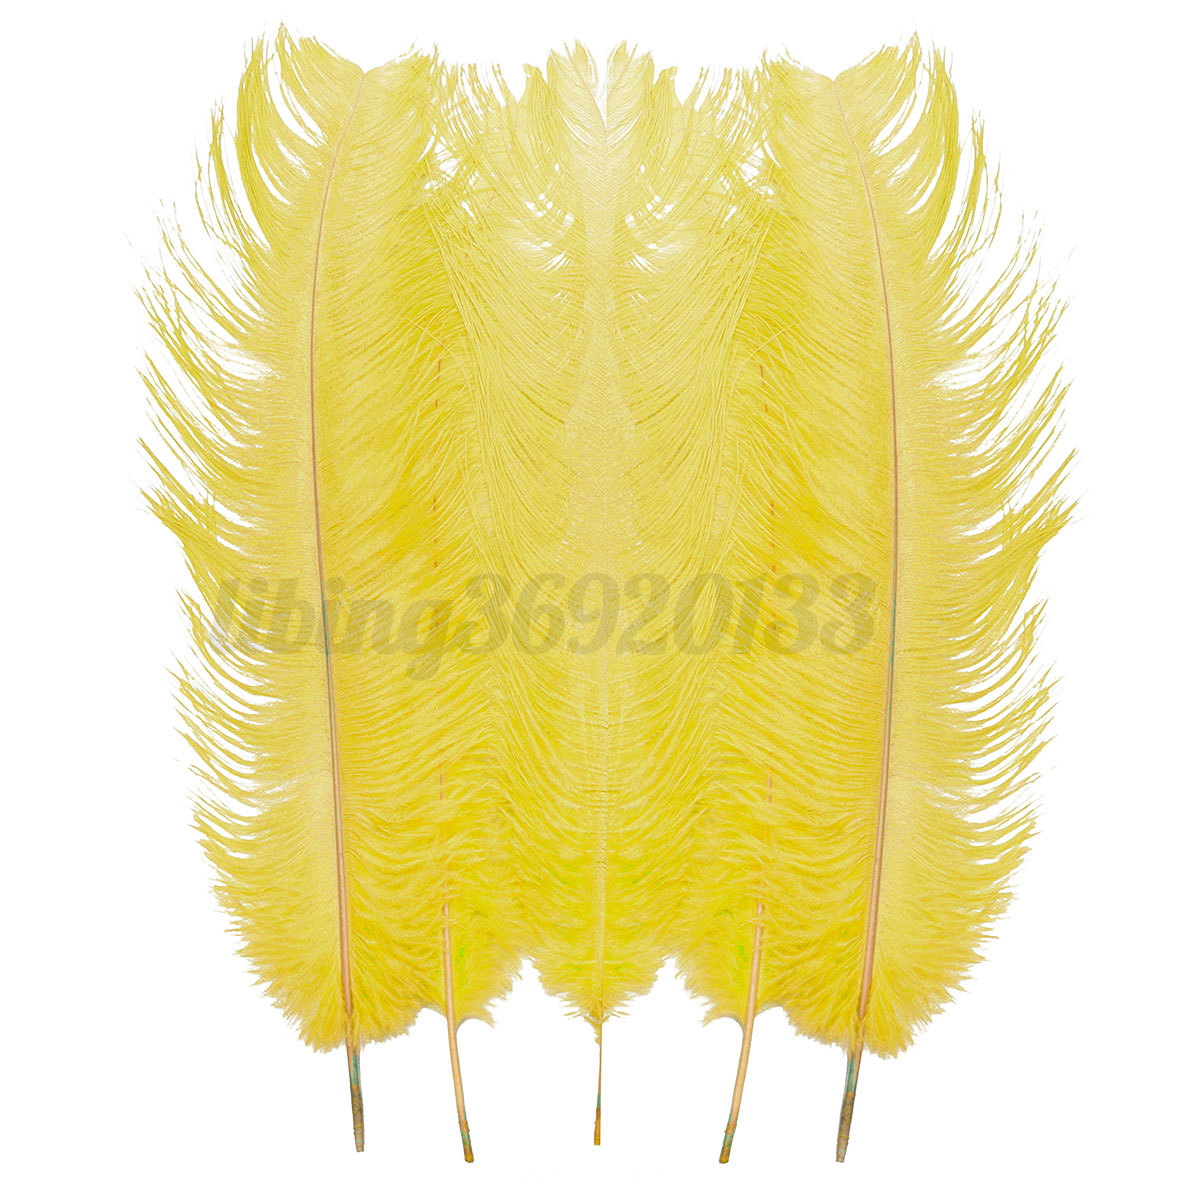 5 10pcs natural large ostrich feathers for craft wedding for Natural feathers for crafts